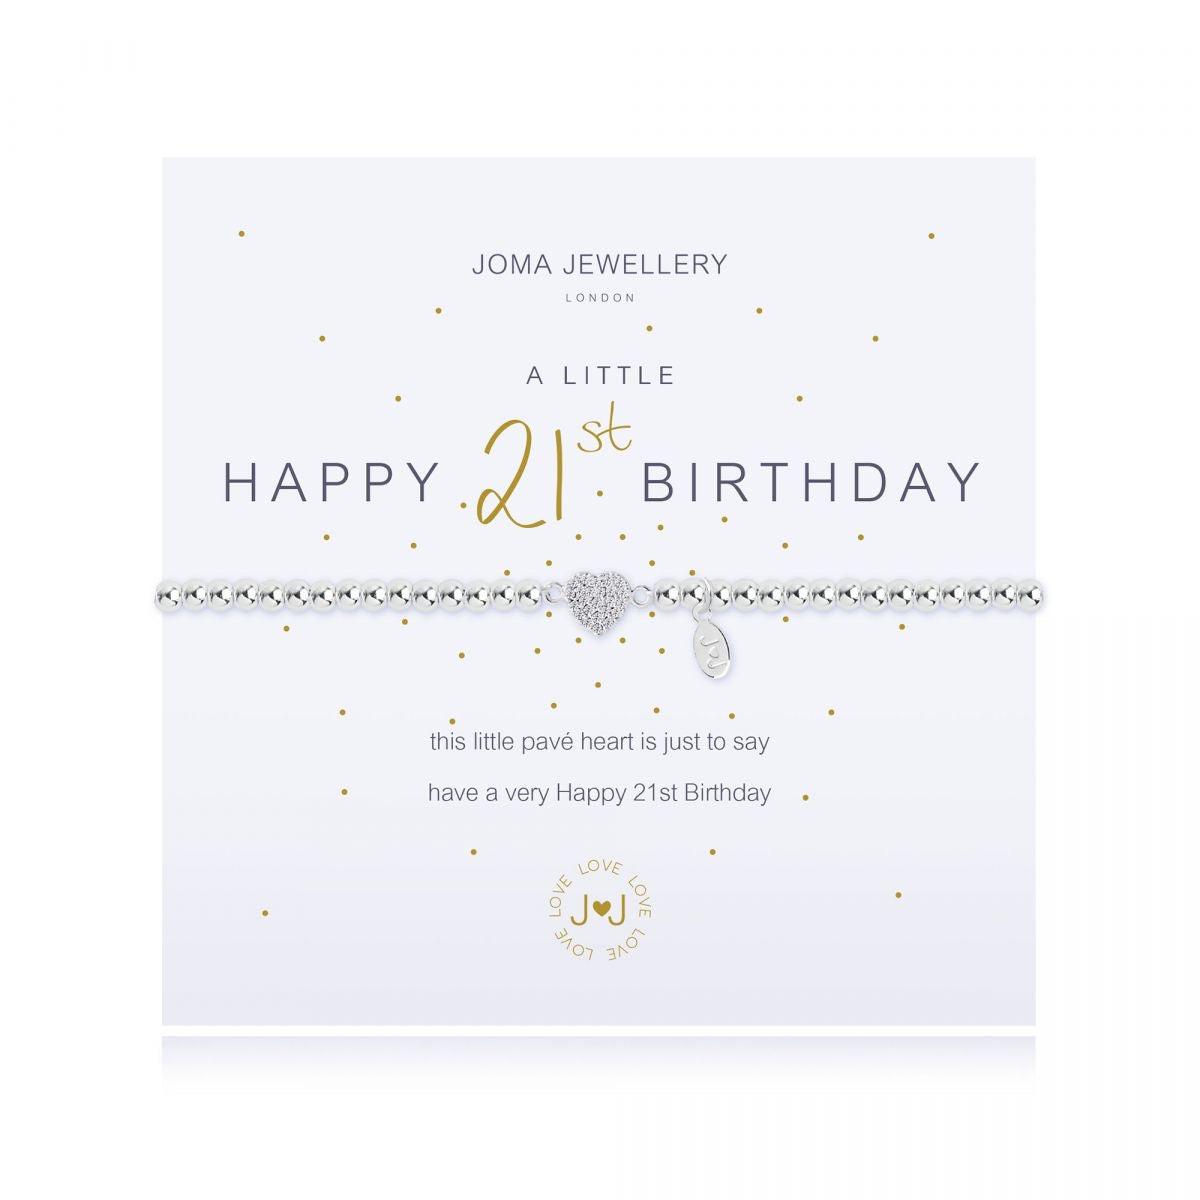 Joma Jewellery 'A Little' 21st Birthday